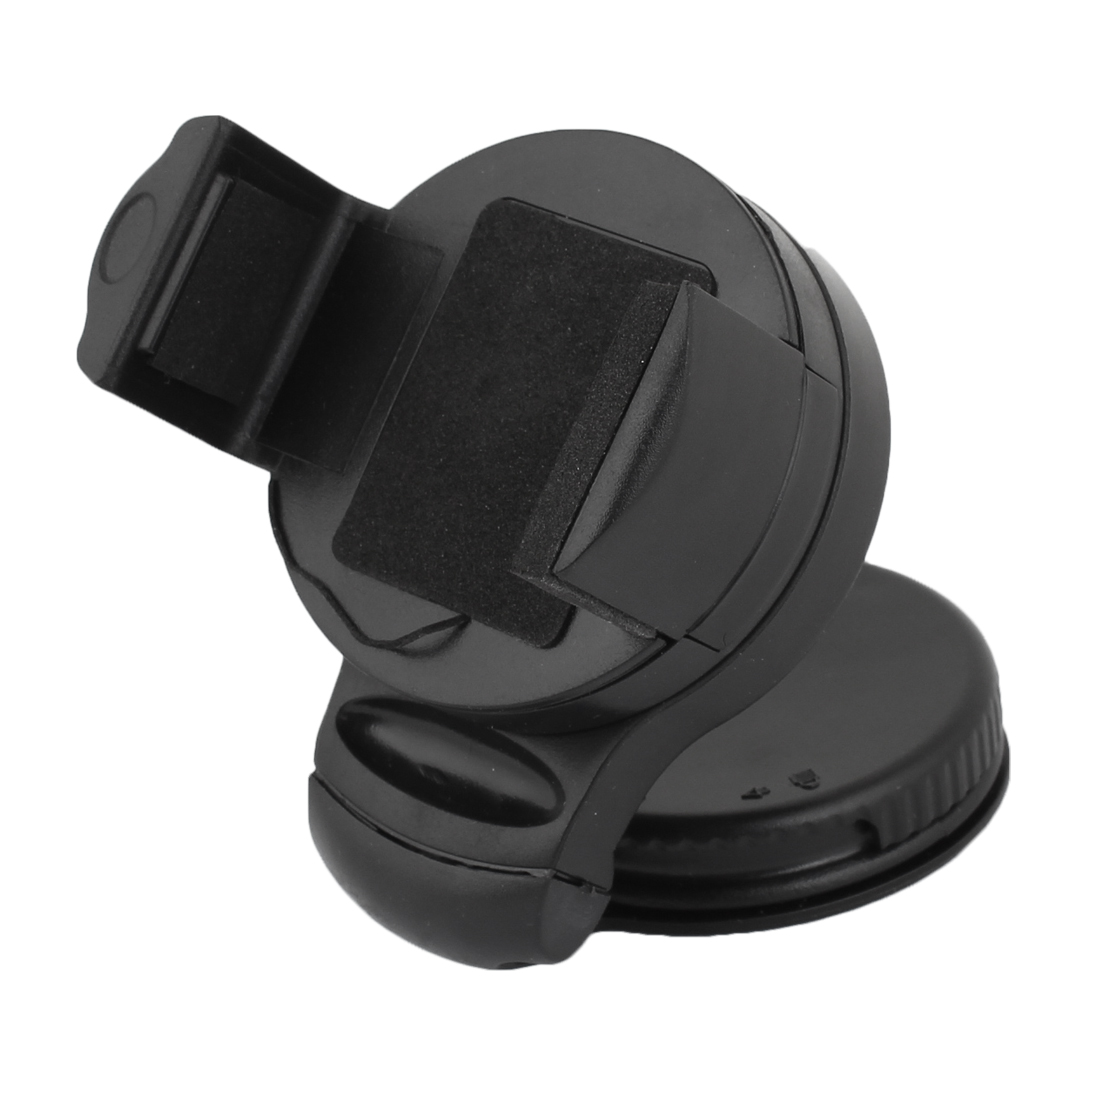 Automobile Windshield 360 Degree Rotation Mobile Phone Holder Bracket Black